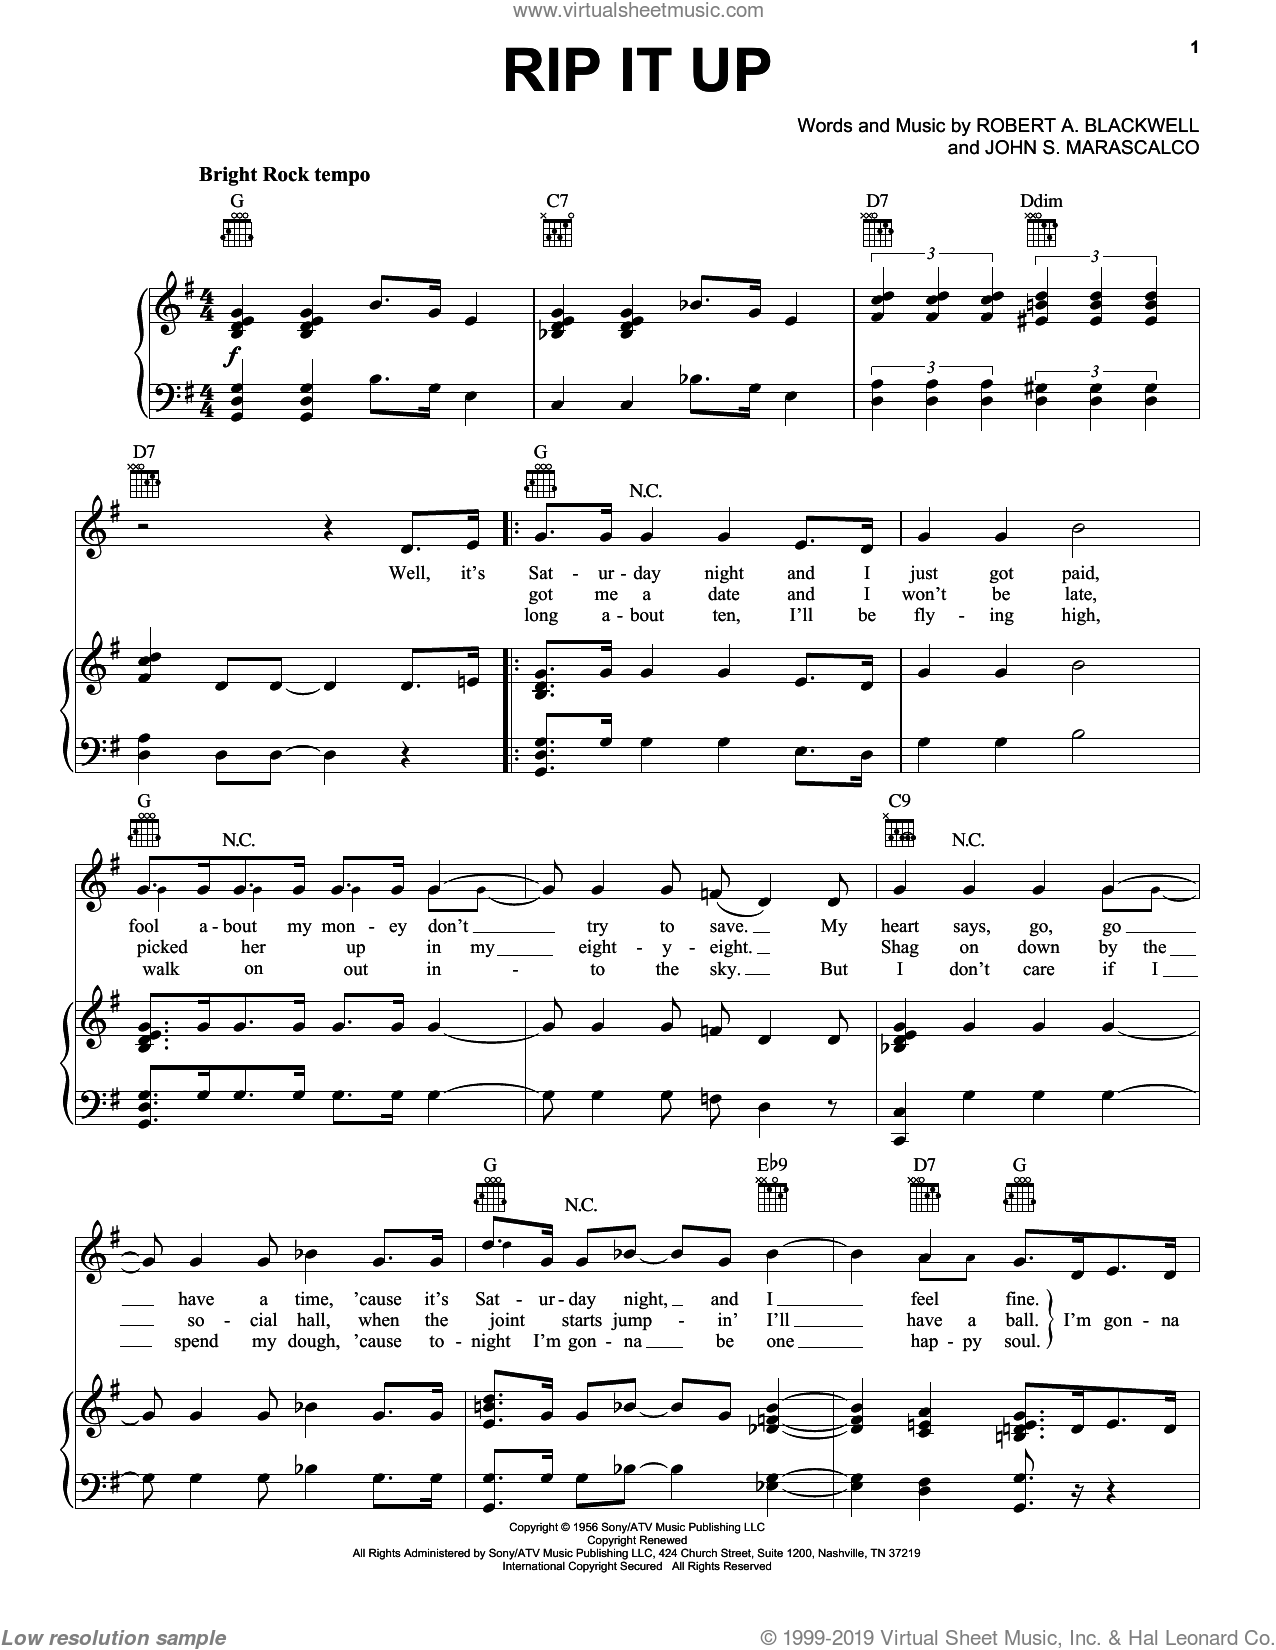 Rip It Up sheet music for voice, piano or guitar by Robert Blackwell